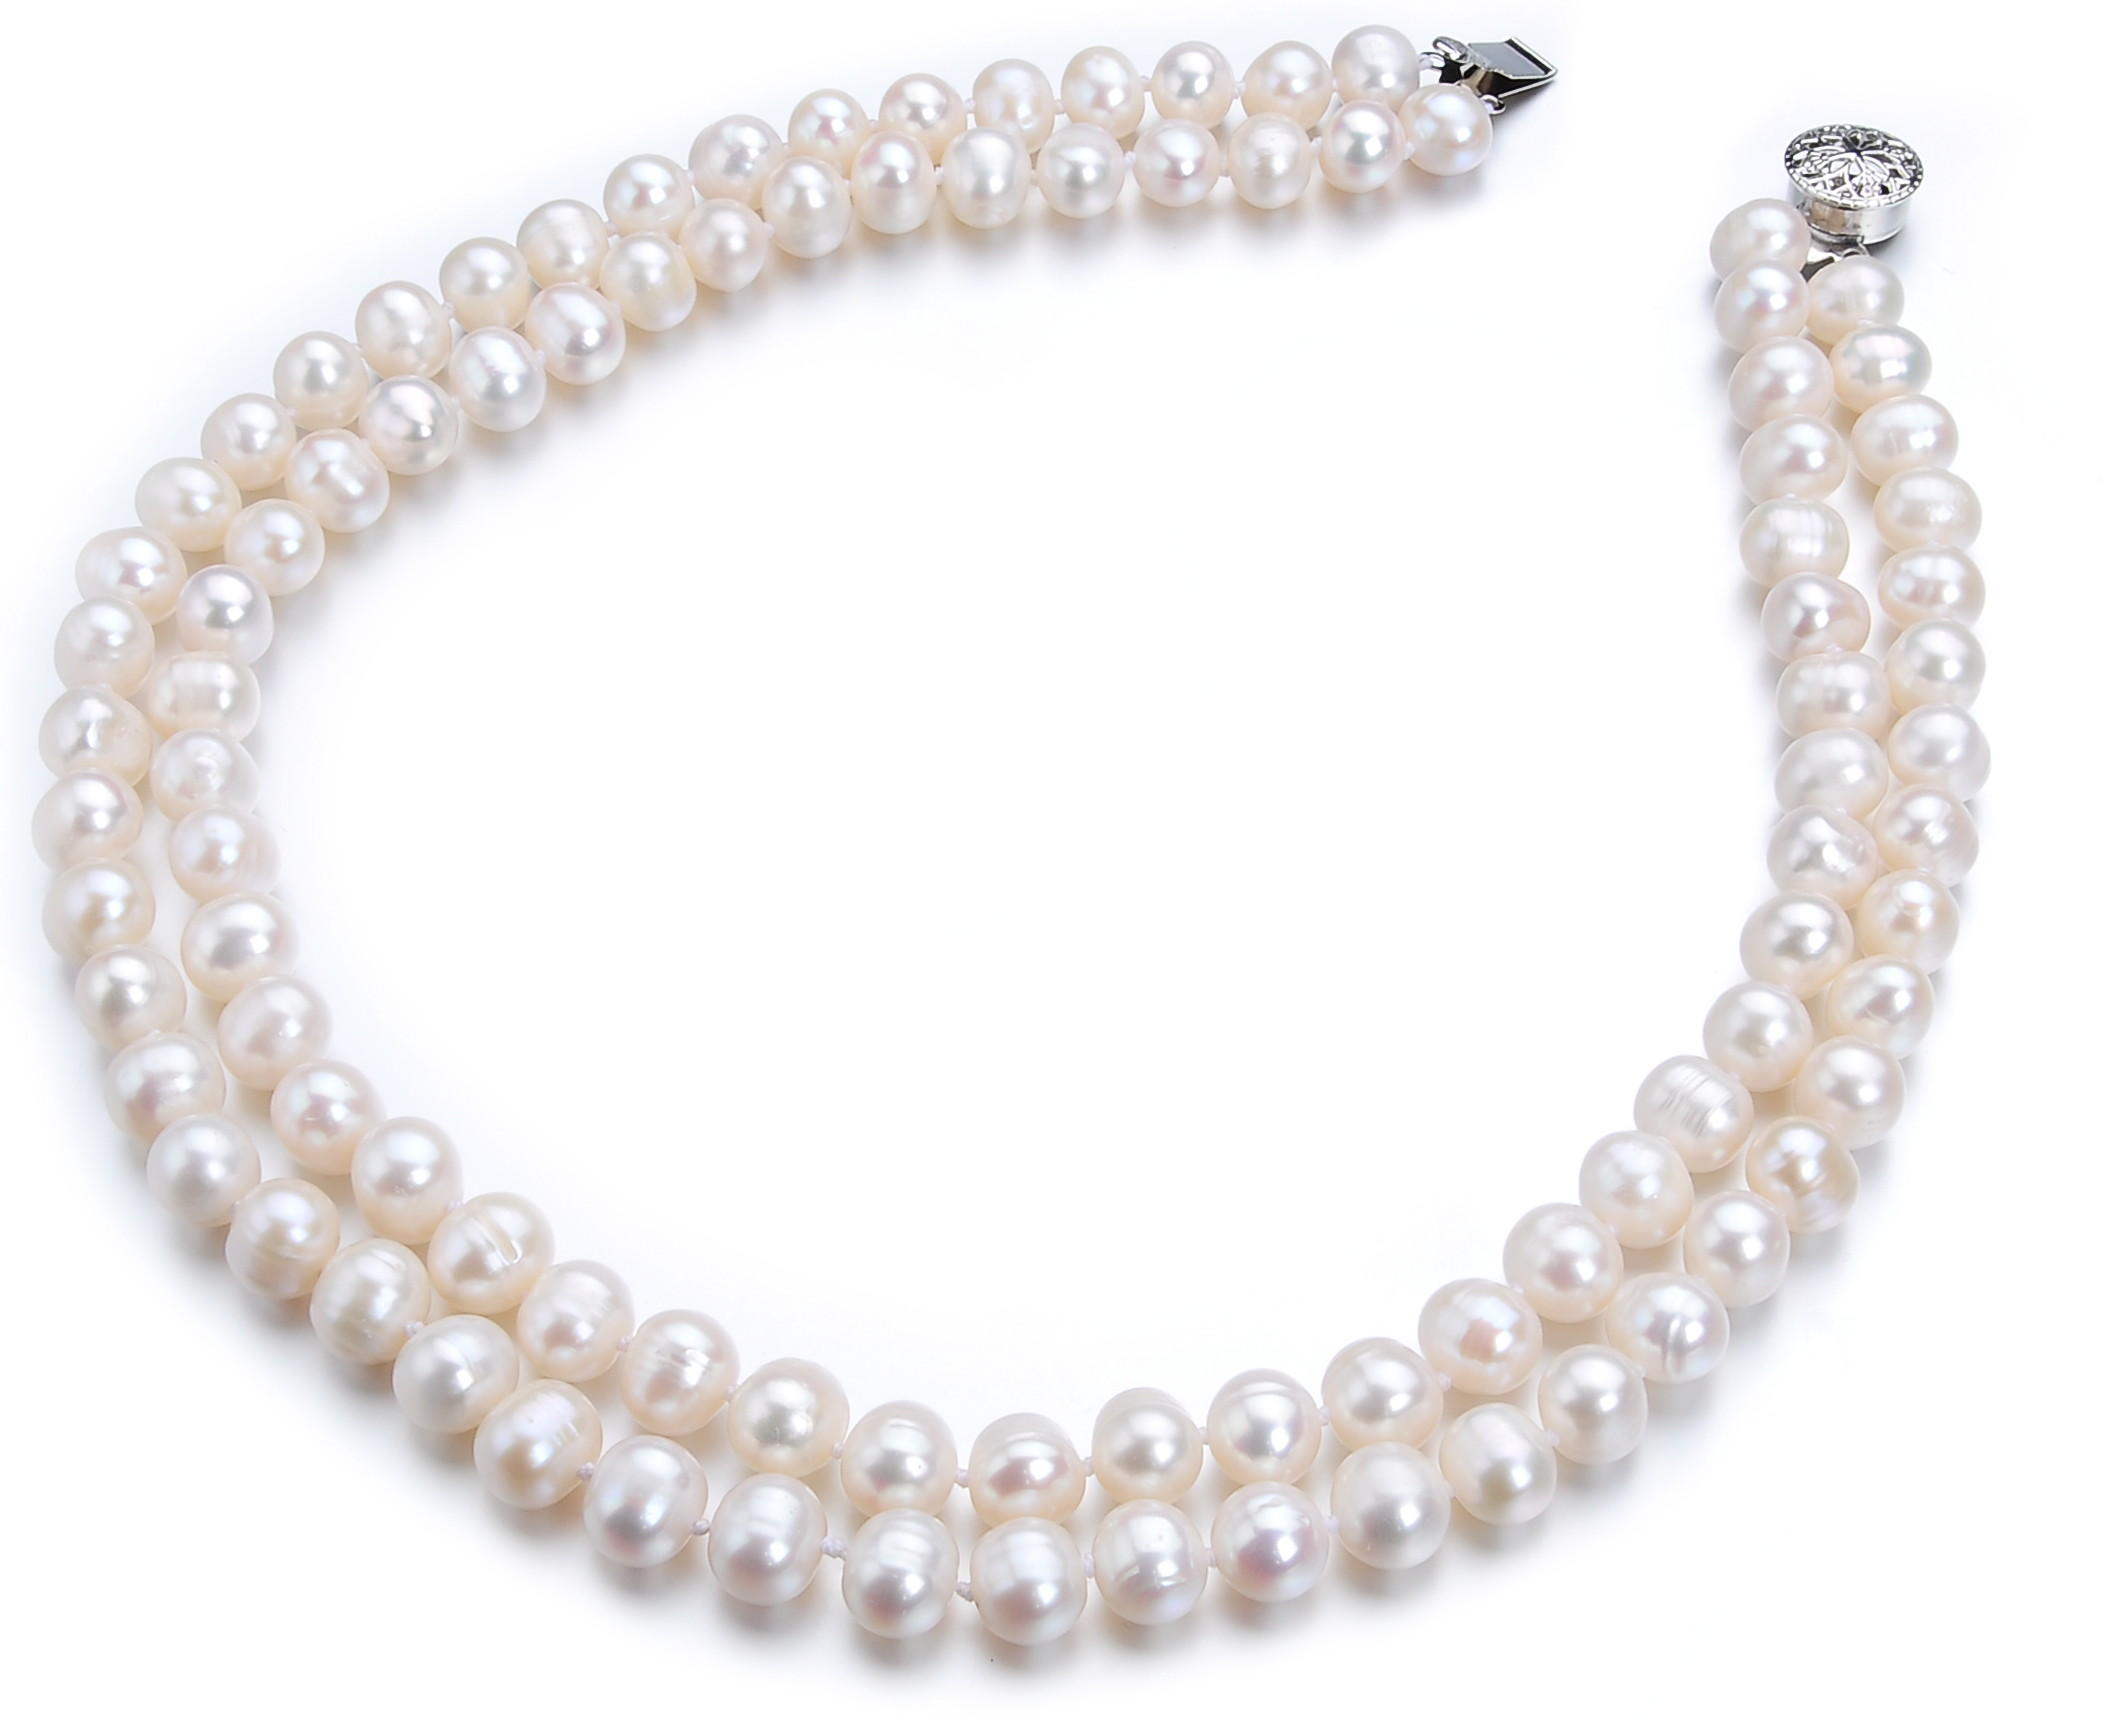 8 mm Two Strand Freshwater White Pearl Necklace -nk166